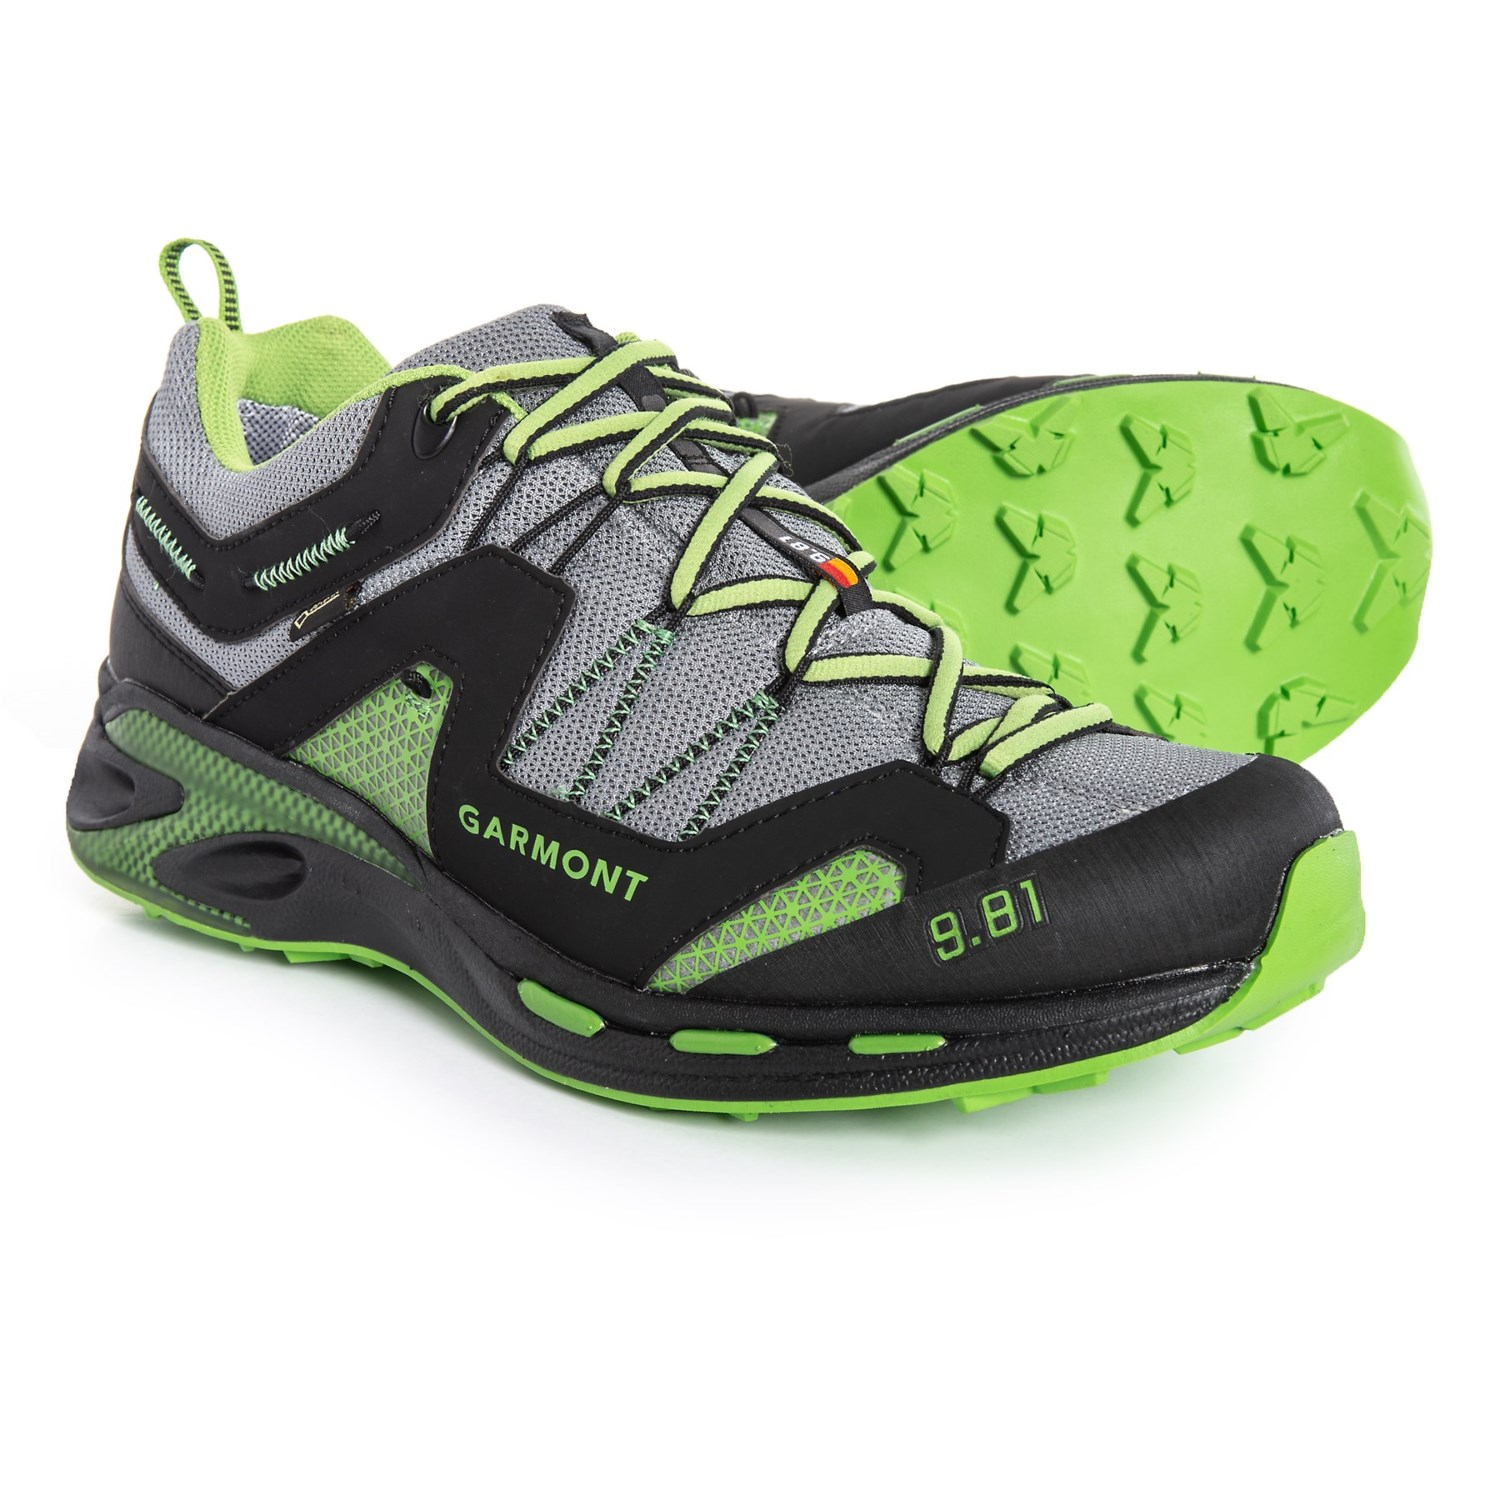 new concept e84d9 5c562 Garmont 9.81 Trail Pro III Gore-Tex® Trail Running Shoes - Waterproof (For  Men)